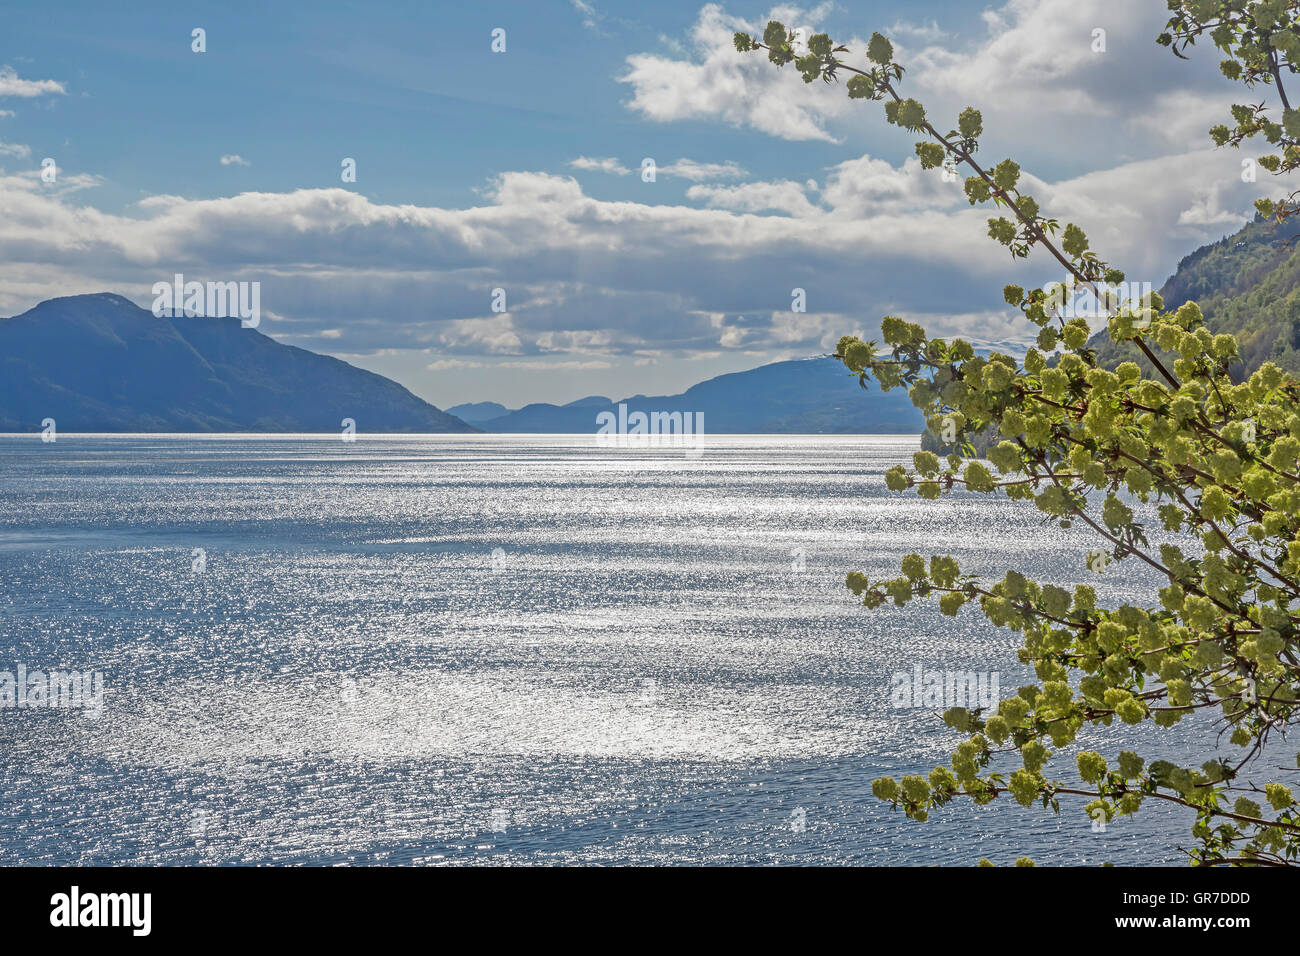 Fruit Tree Bloom By The Hardangerfjord In Norway - Stock Image